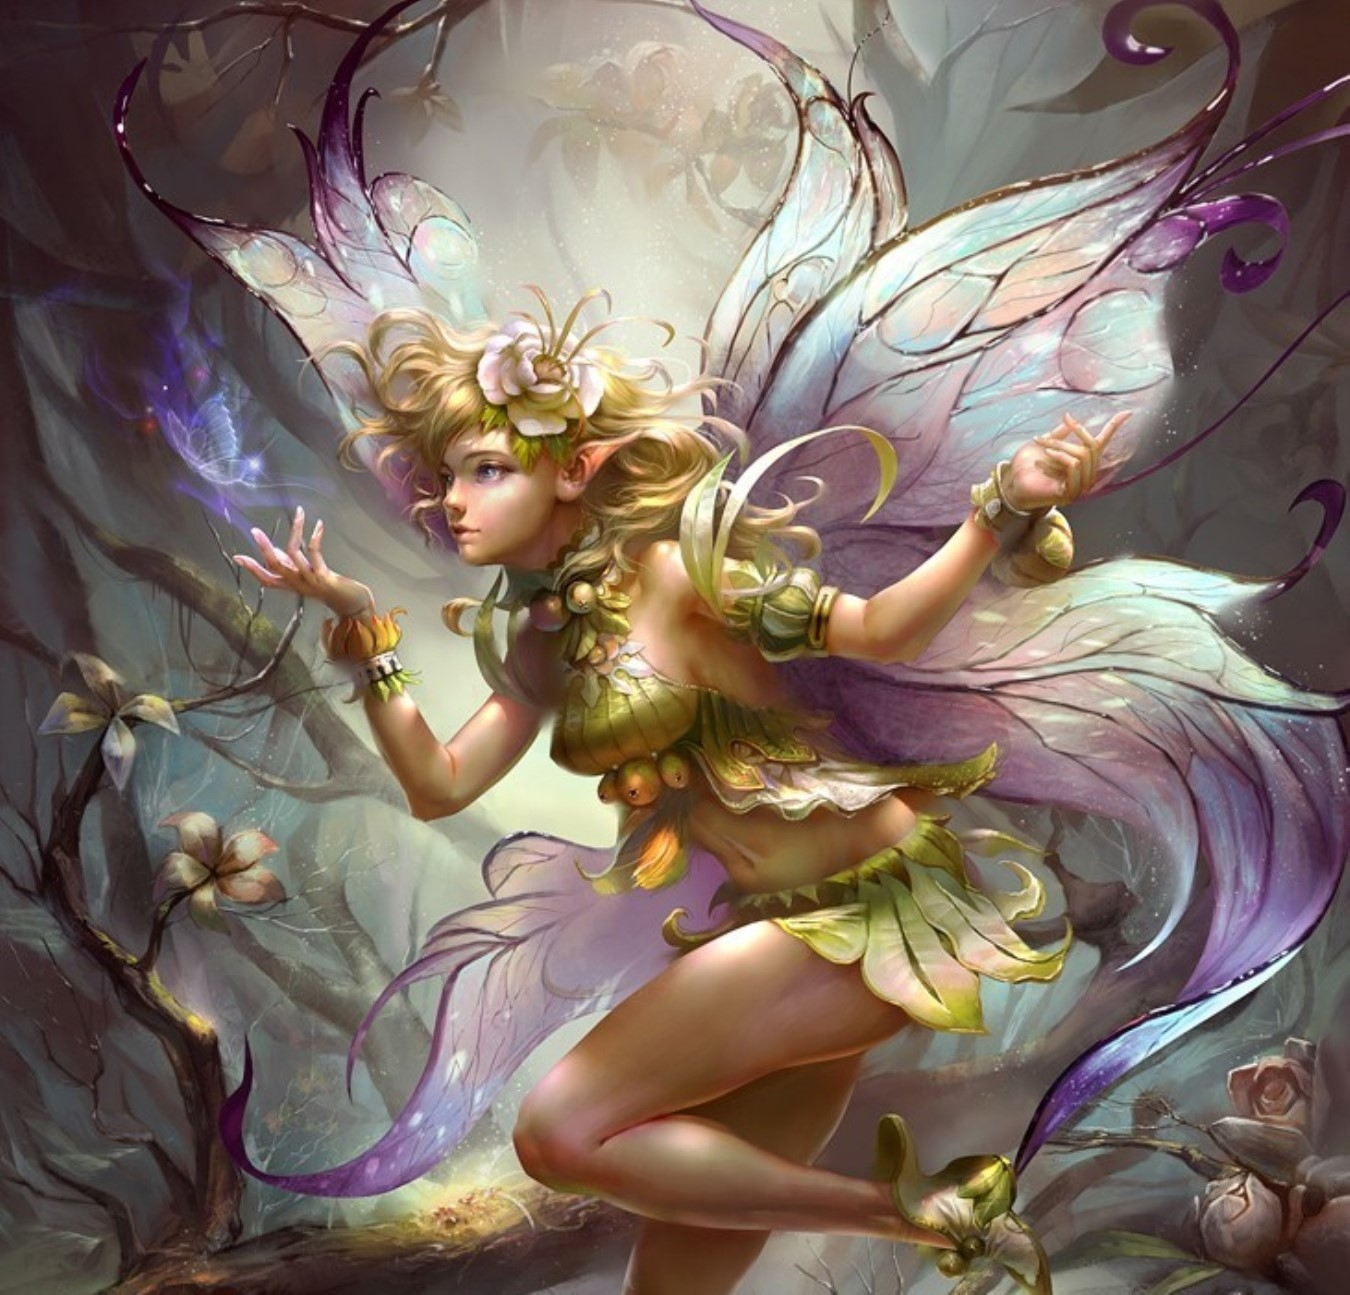 Fantasy fairy art naked images